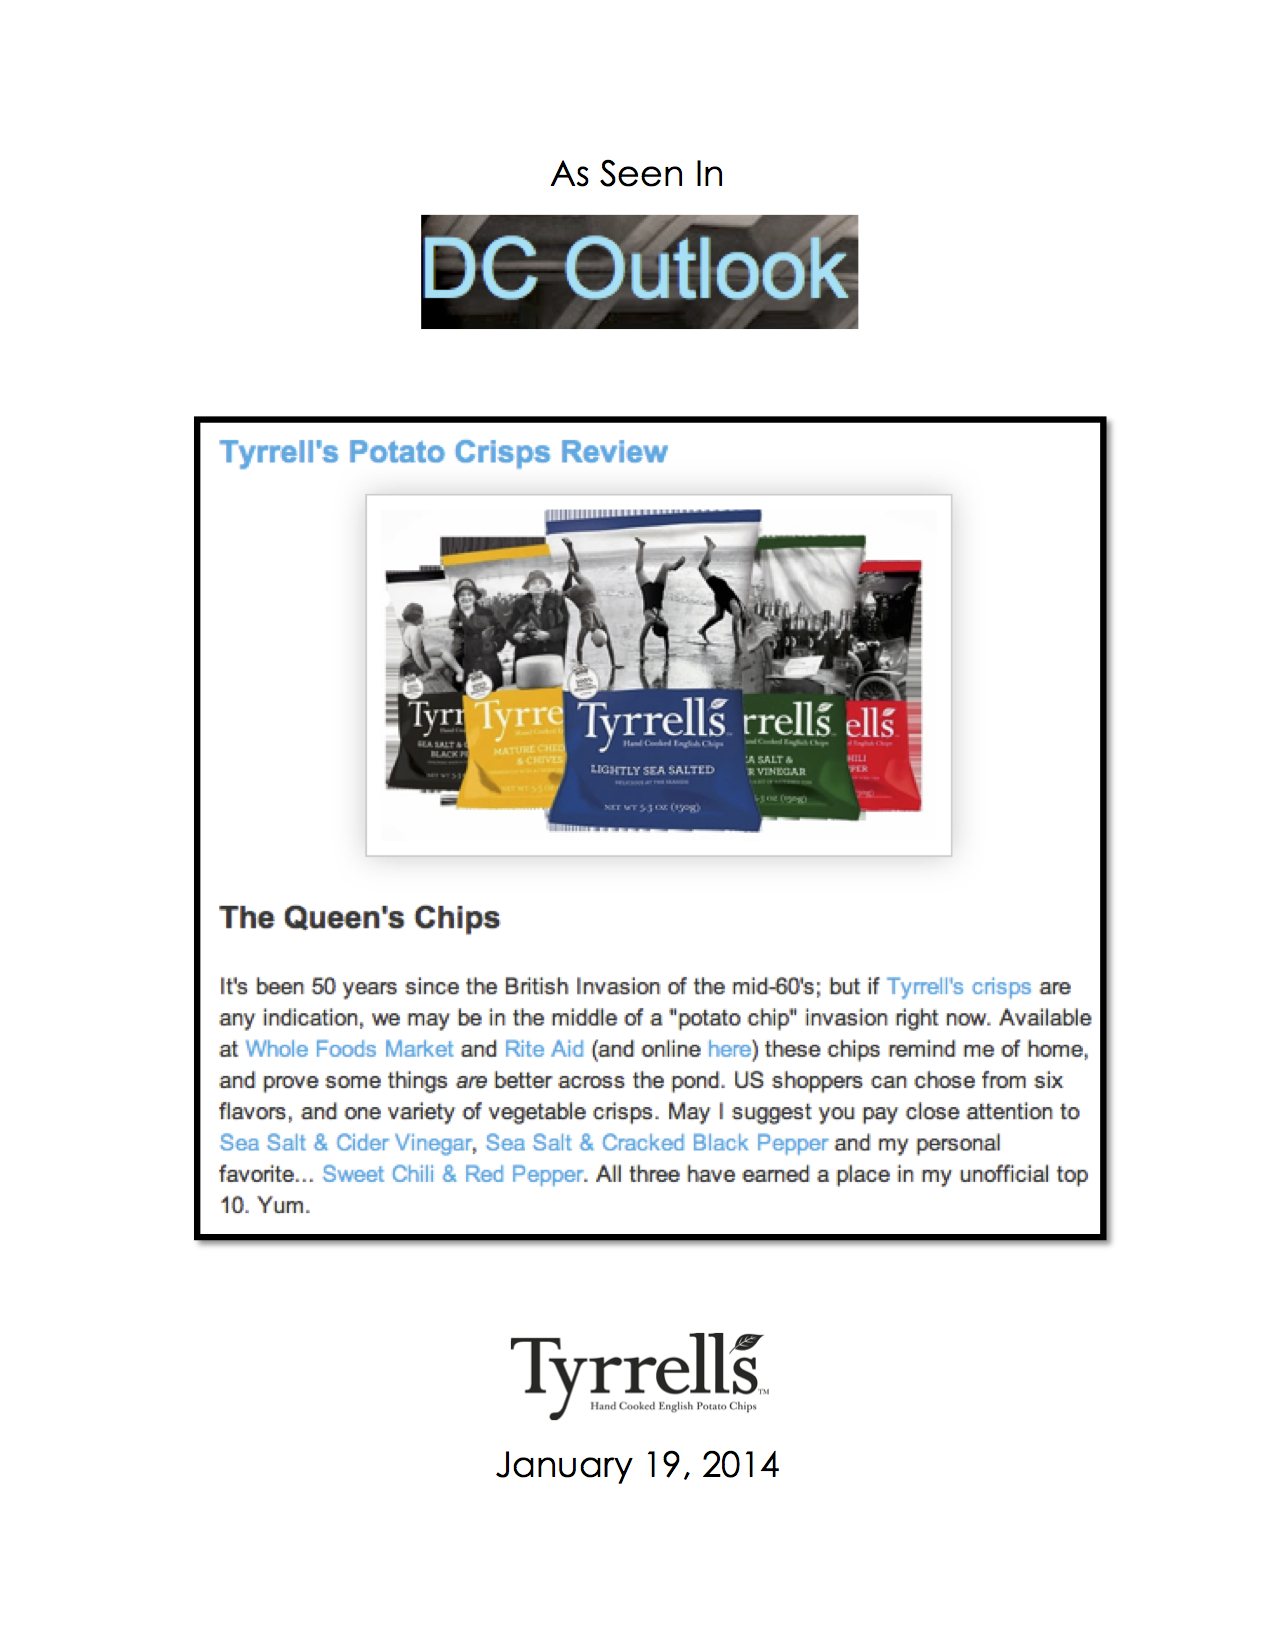 Tyrrells Coverage As Seen In DC Outlook copy.jpg